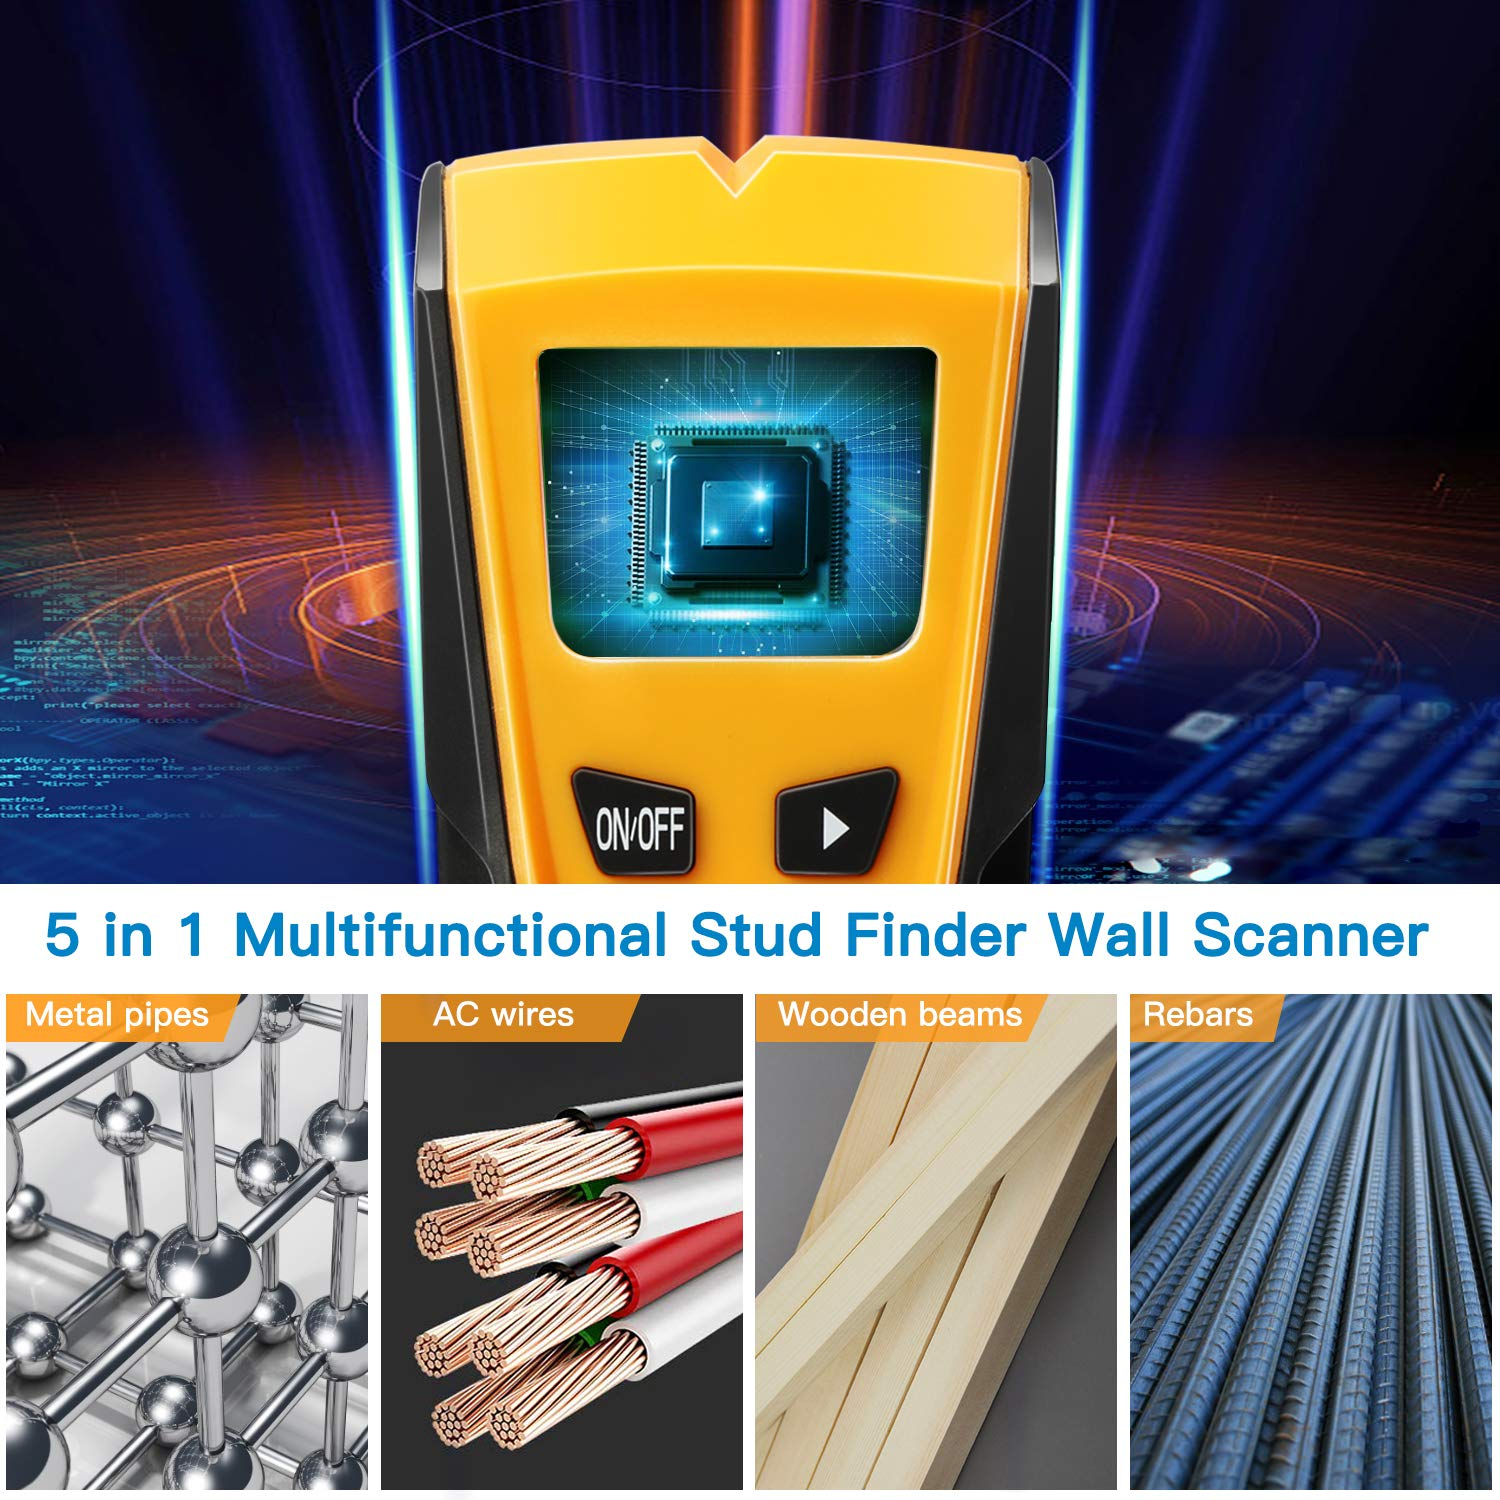 Upgraded 5 in 1 Stud Finder Wall Detector with Battery LCD Display for Wood Metal Studs AC Wire Detection Electronic Stud Sensor Wall Scanner Center Finding